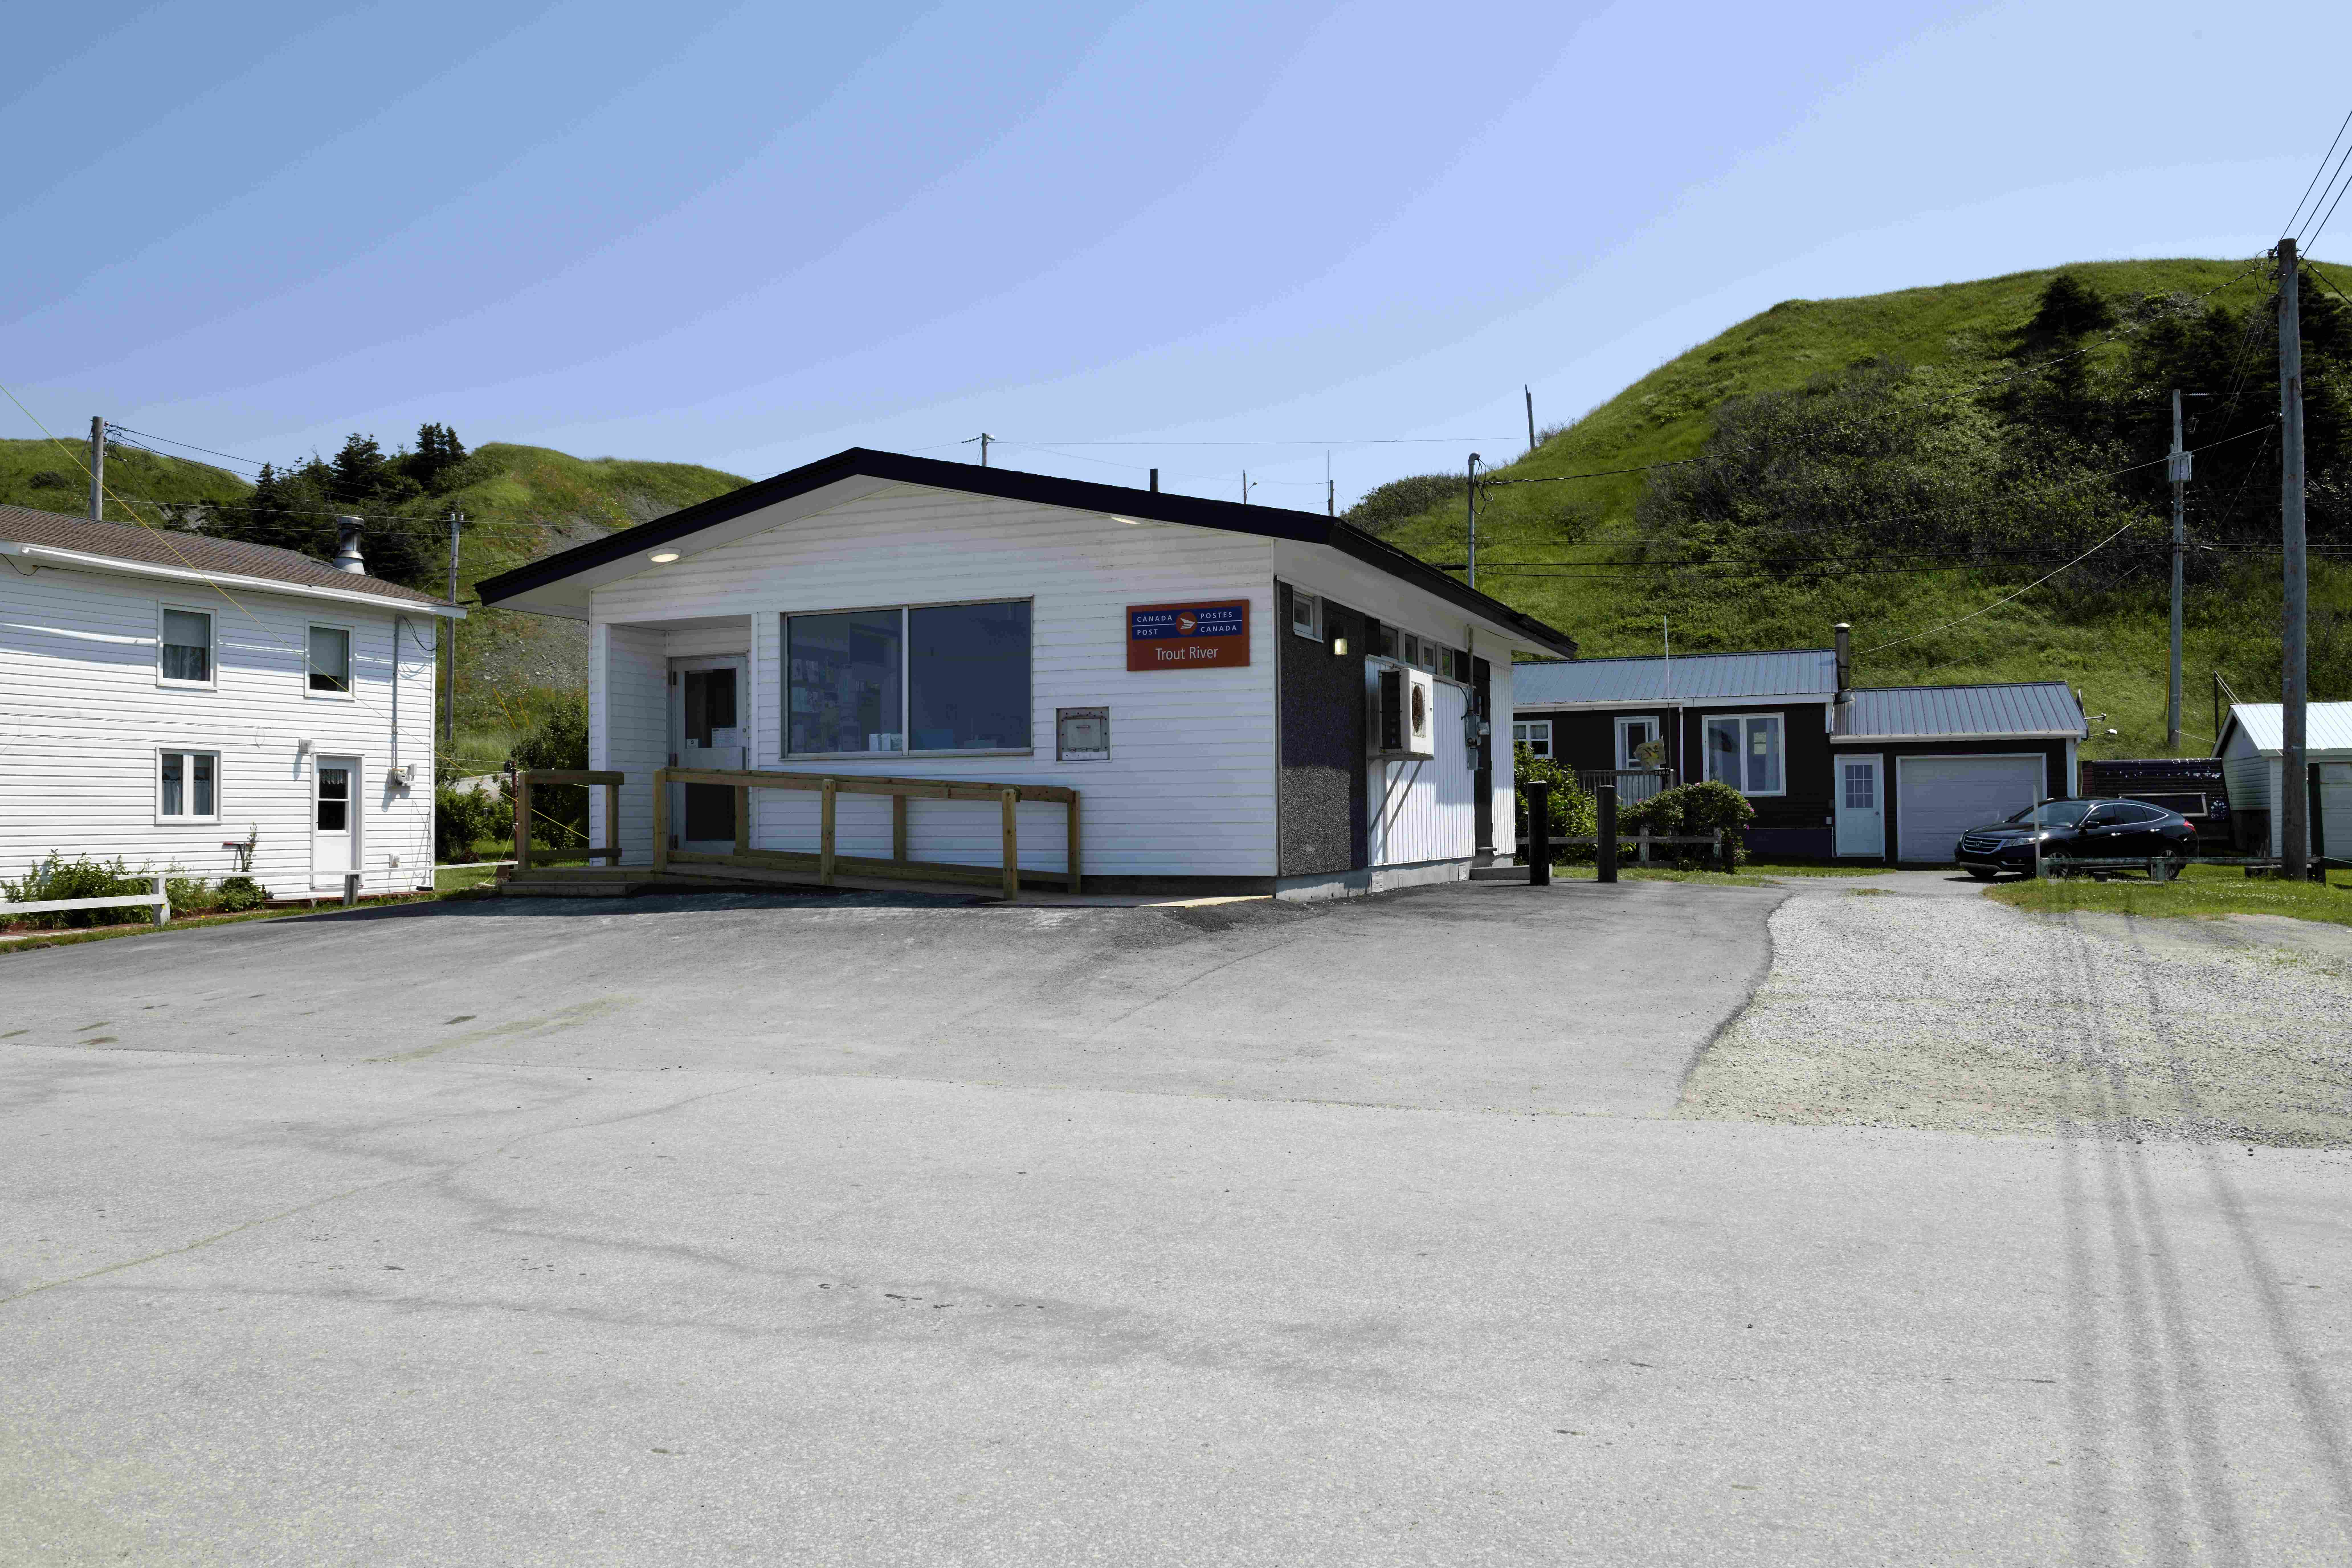 Trout River Post Office